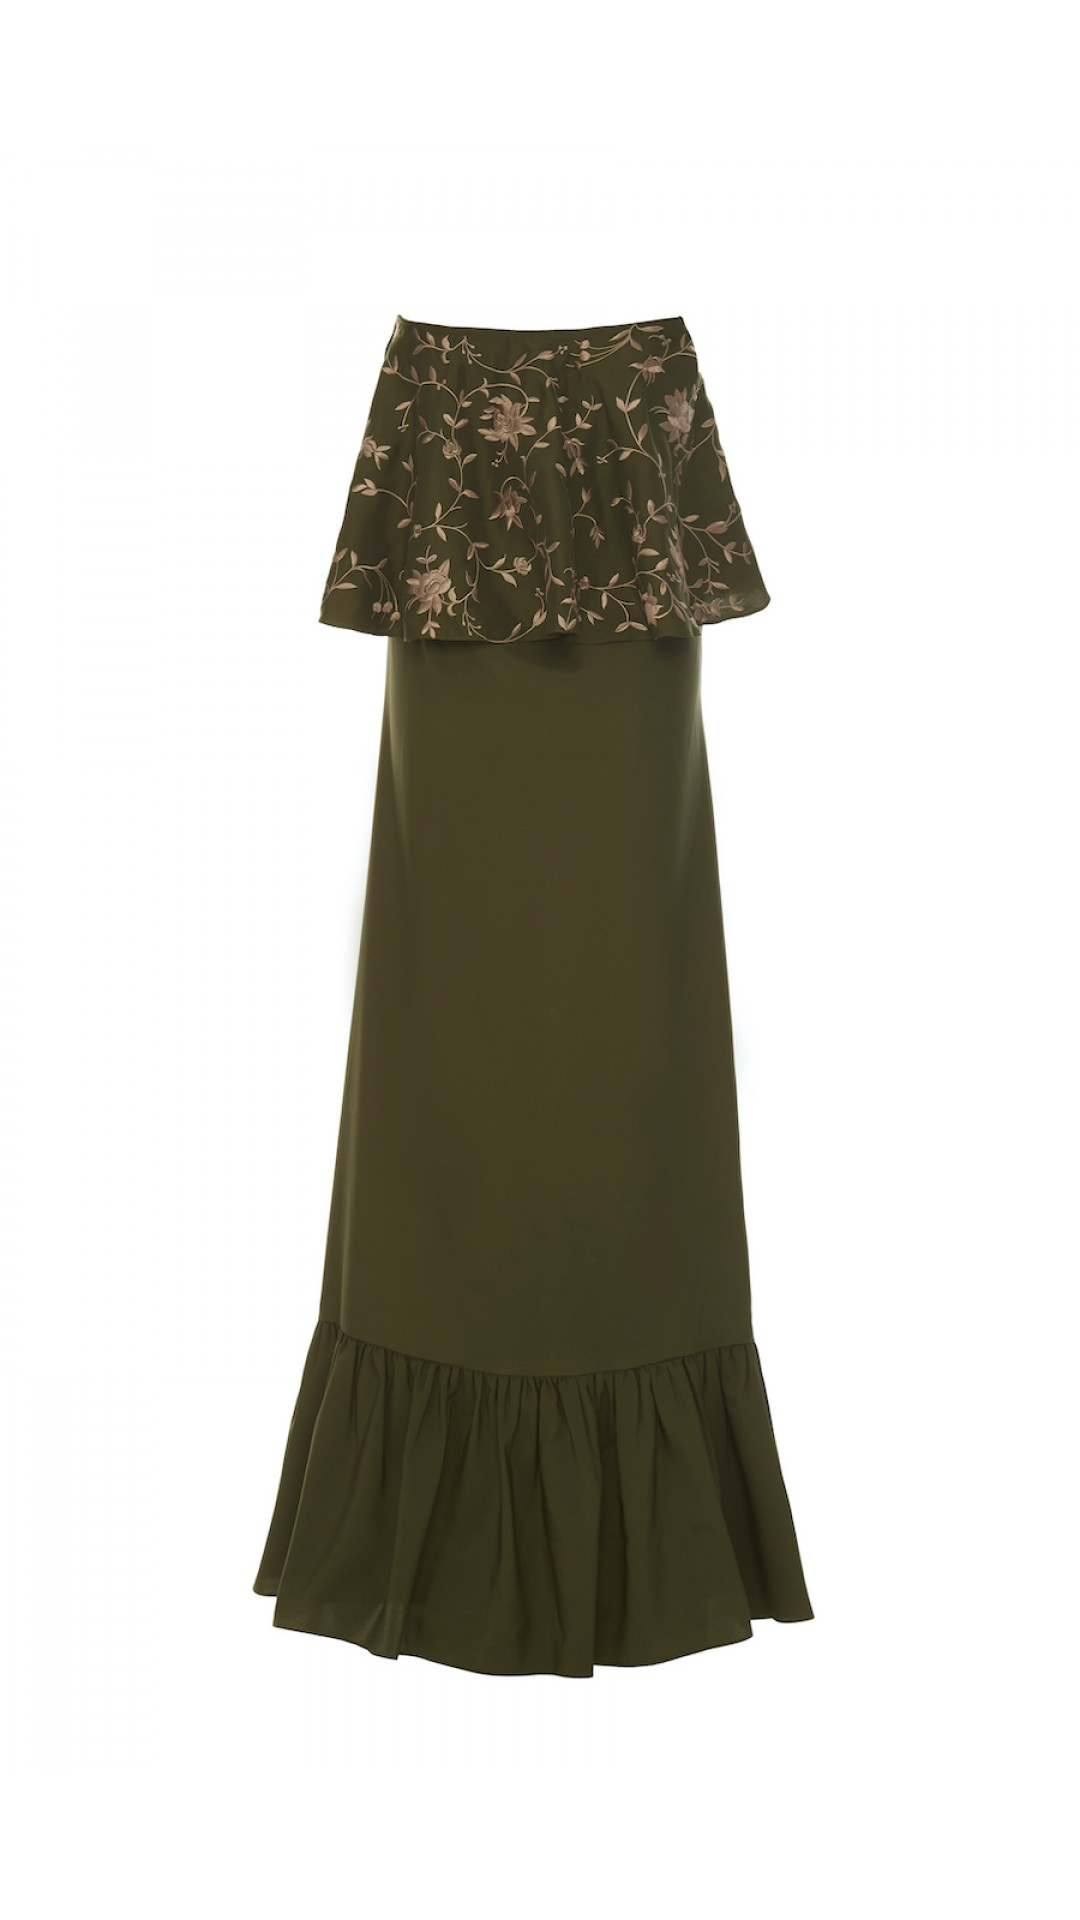 EMBROIDERED GREEN SATIN DRESS